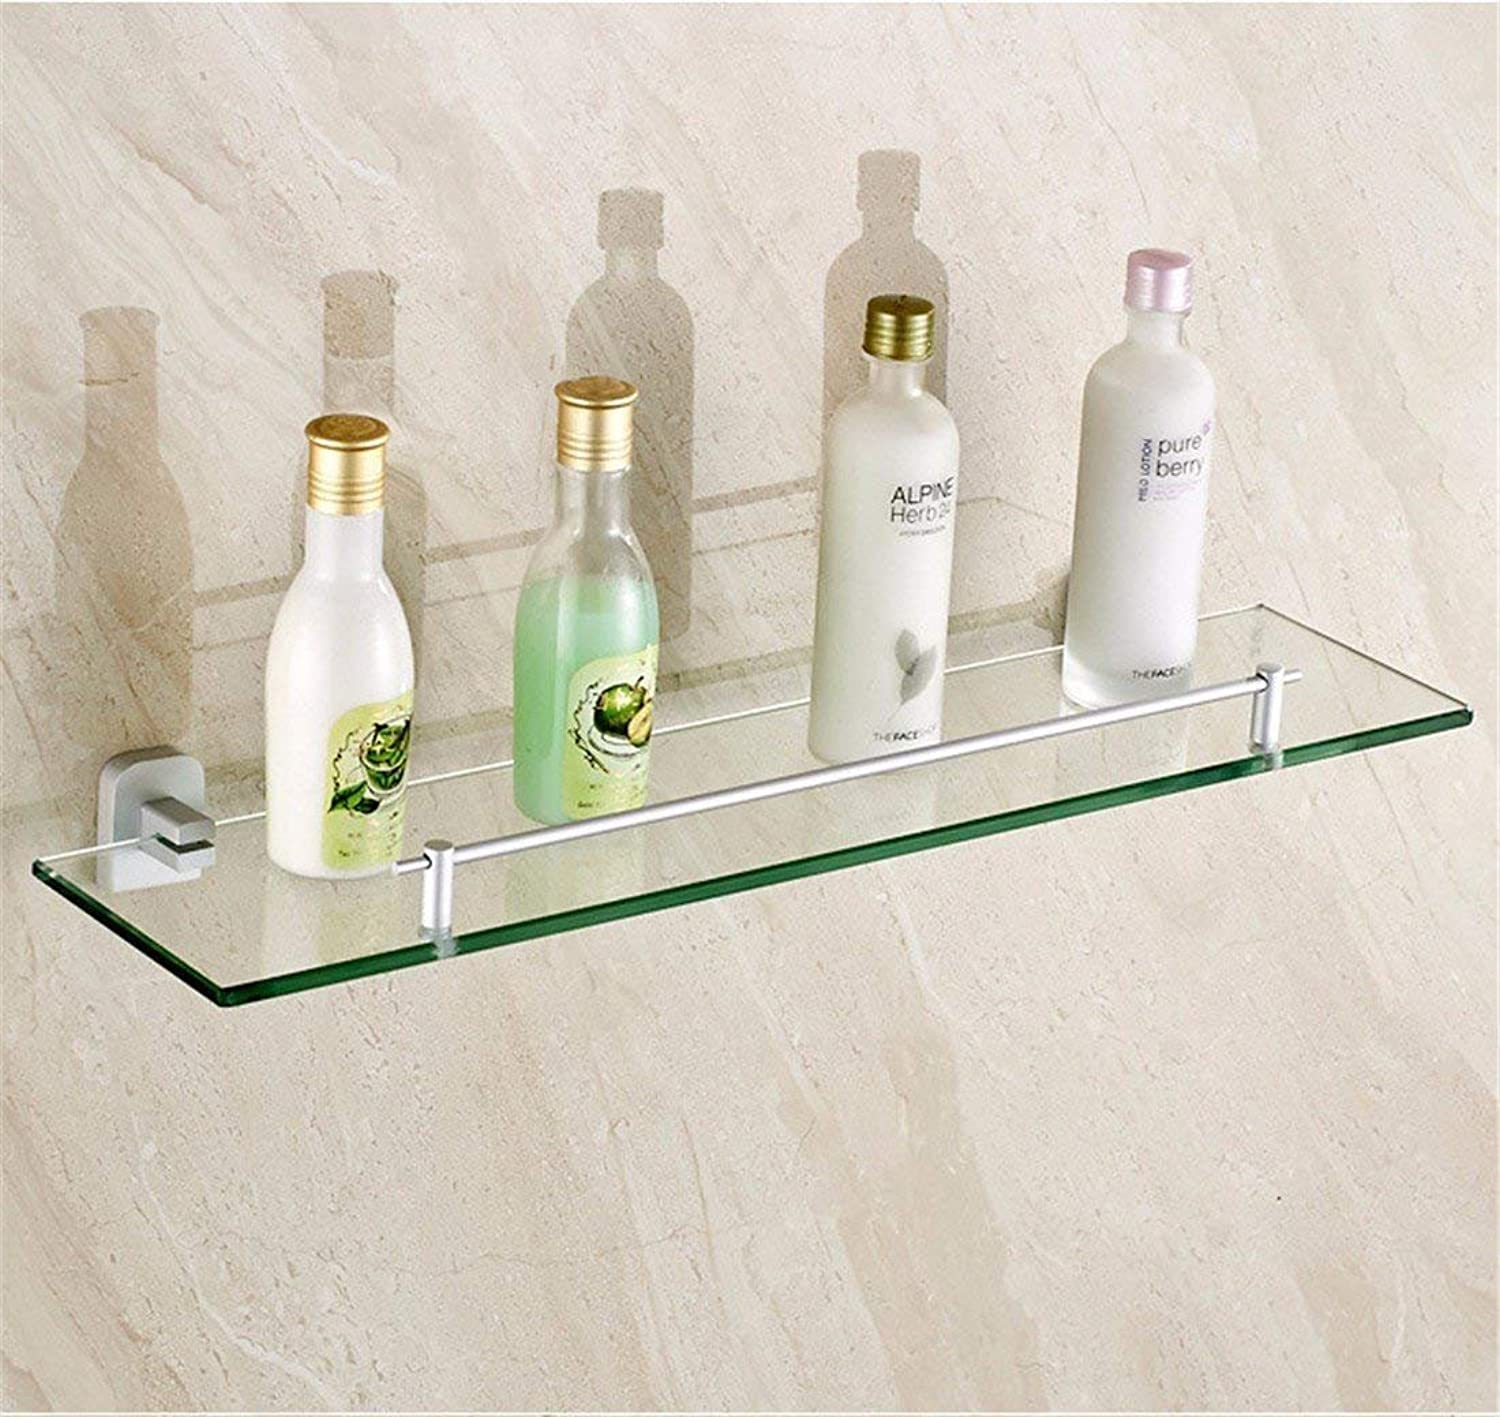 The Contemporary Space, Sleeve Aluminum Accessories of Bathroom Double and Single Pole Glass Hairdressing,Rack 1